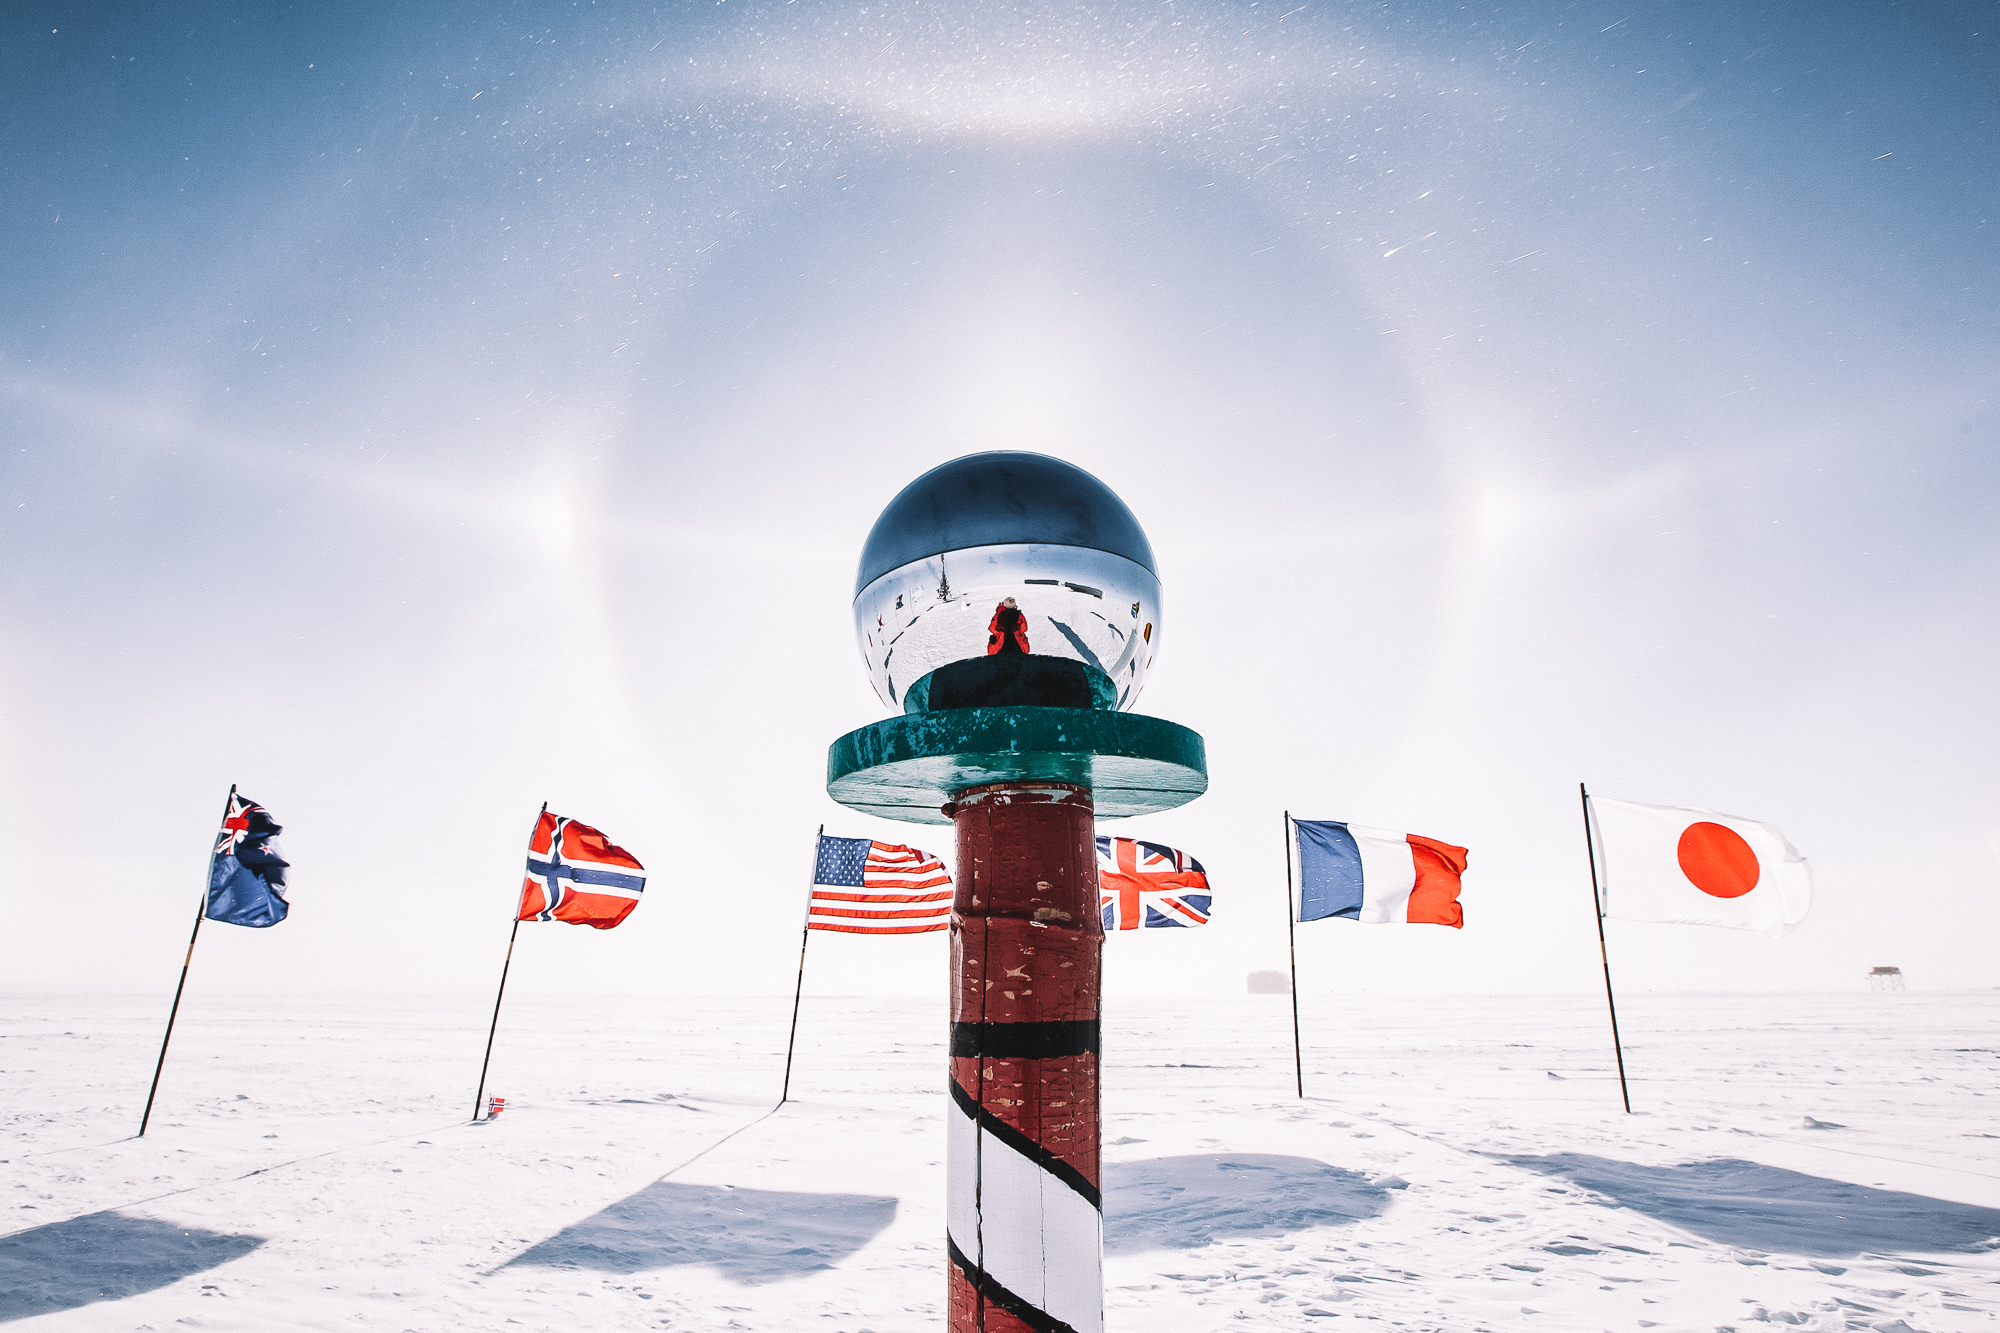 geographic south pole - Tread where few have done before by reaching the planet's lowest point and intersection of Earth's axis of rotation. The Amundsen-Scott scientific base is the only permanent human structure in this extreme and isolated region of Antarctica.